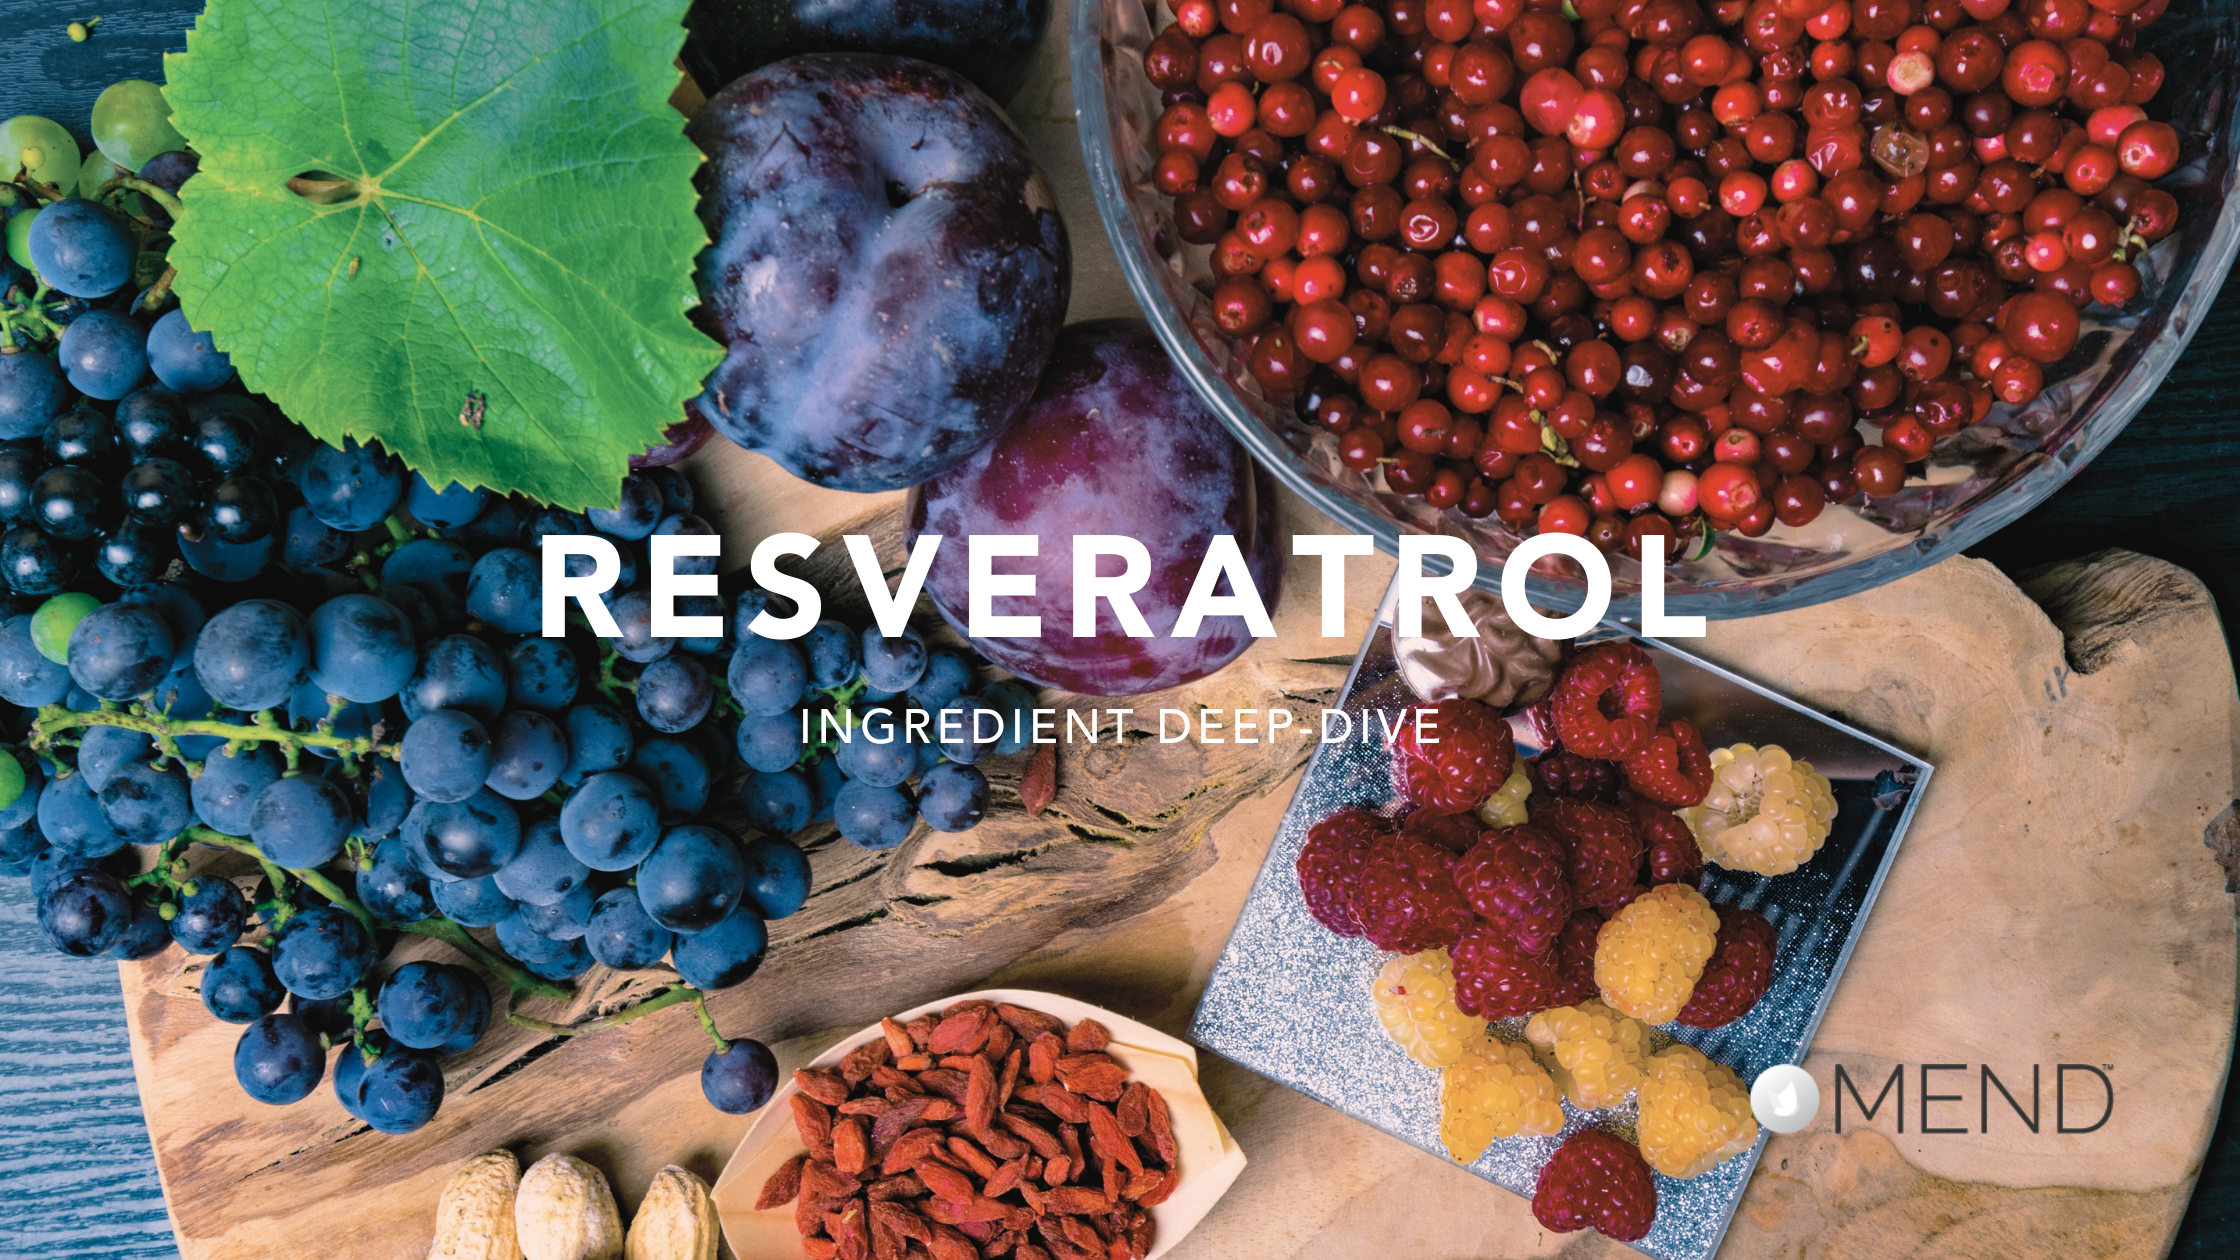 Resveratrol: The Benefits & Sources